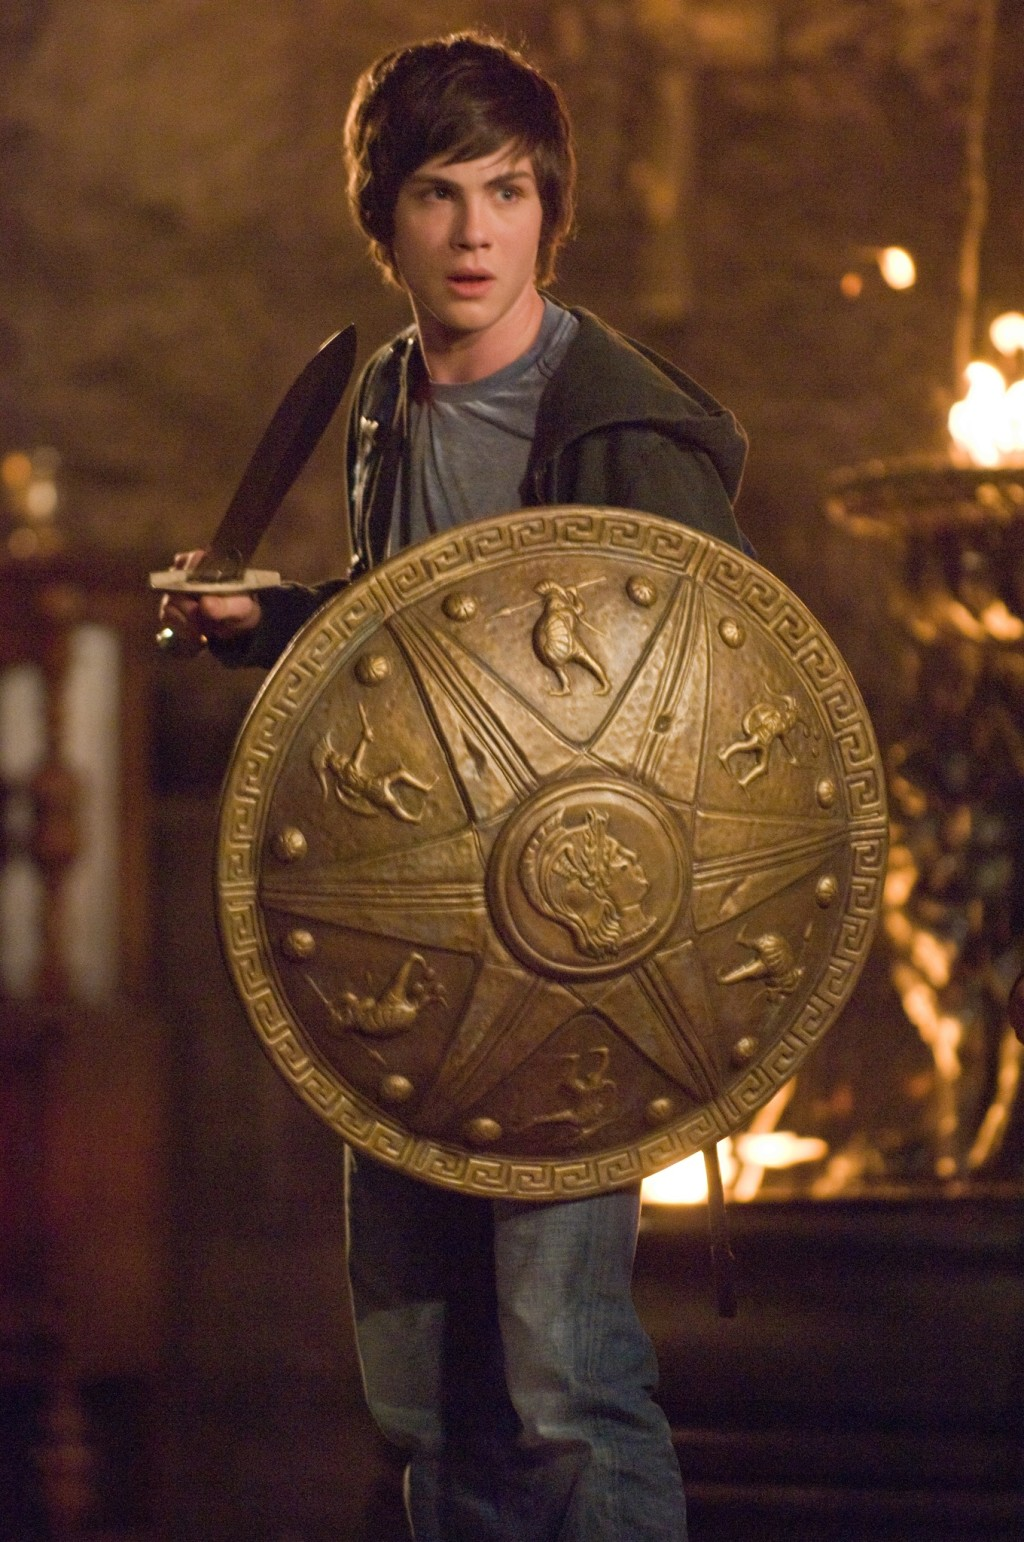 percy jackson and the olympians full movie free download mp4